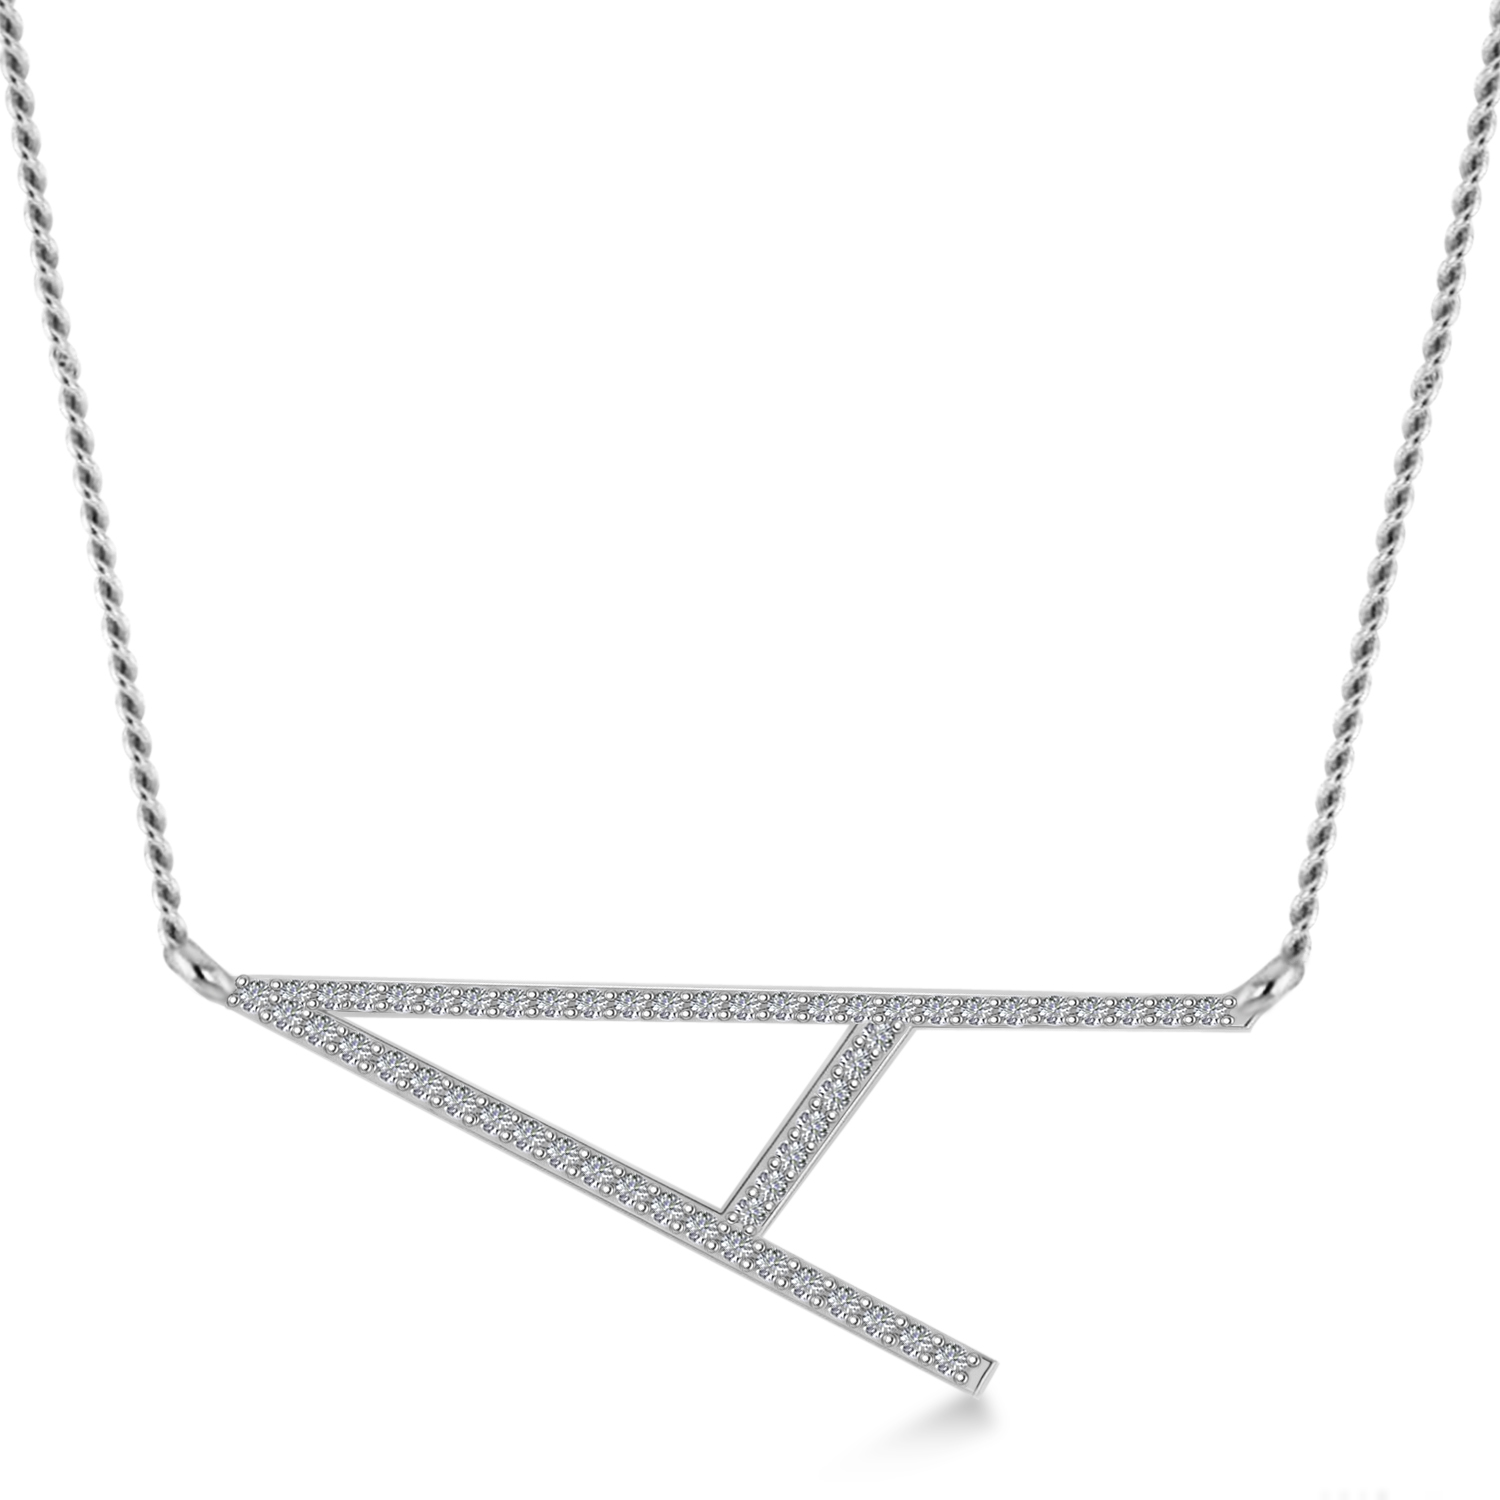 Personalized Diamond Large Tilted Initial Necklace 14k White Gold